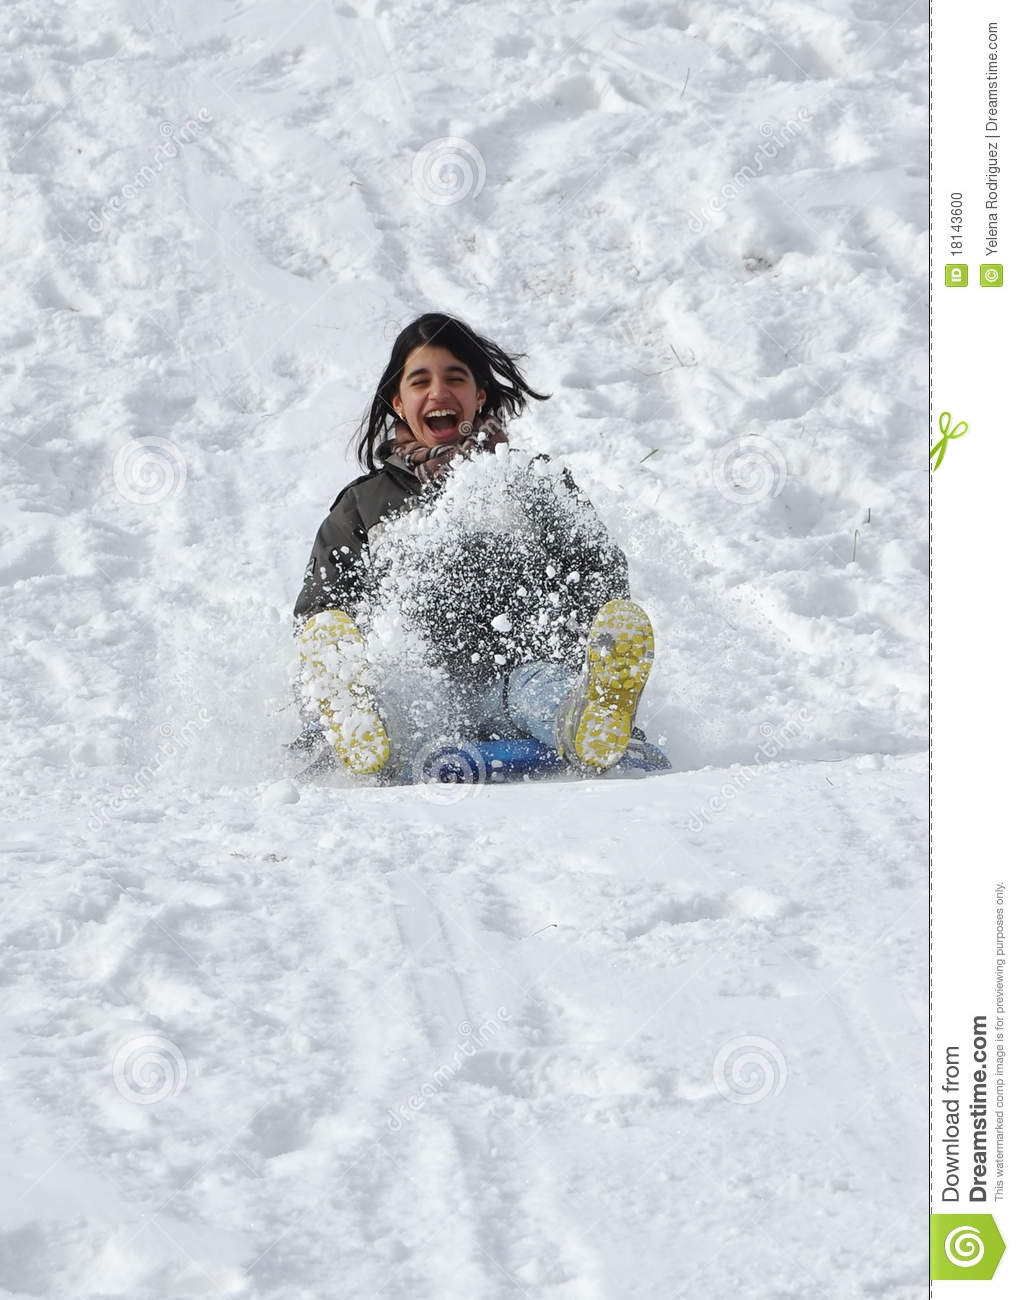 Latin Teenager Sliding Down A Snowy Steep Hill On Stock